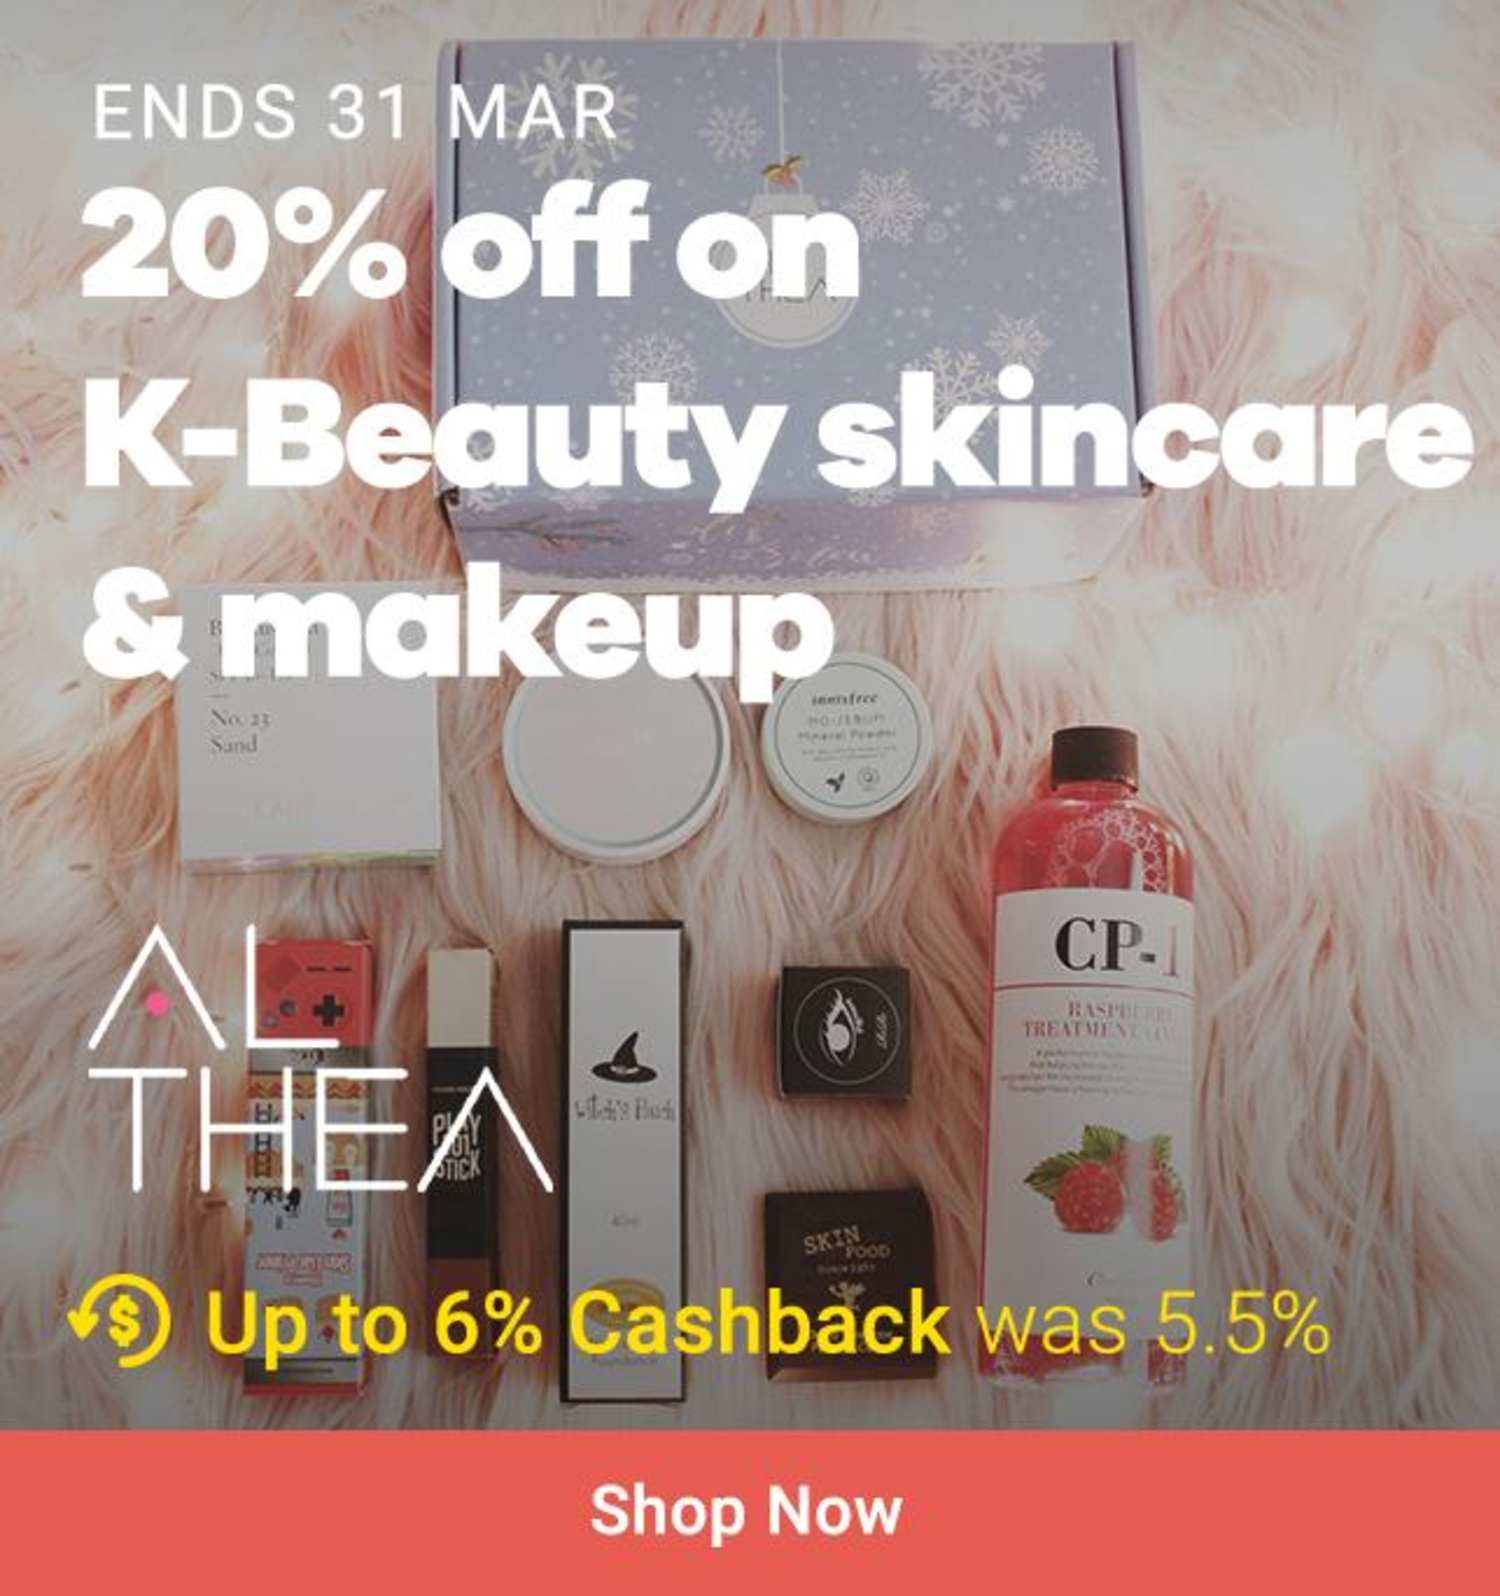 Althea: 20% off on K-beauty skincare makeup